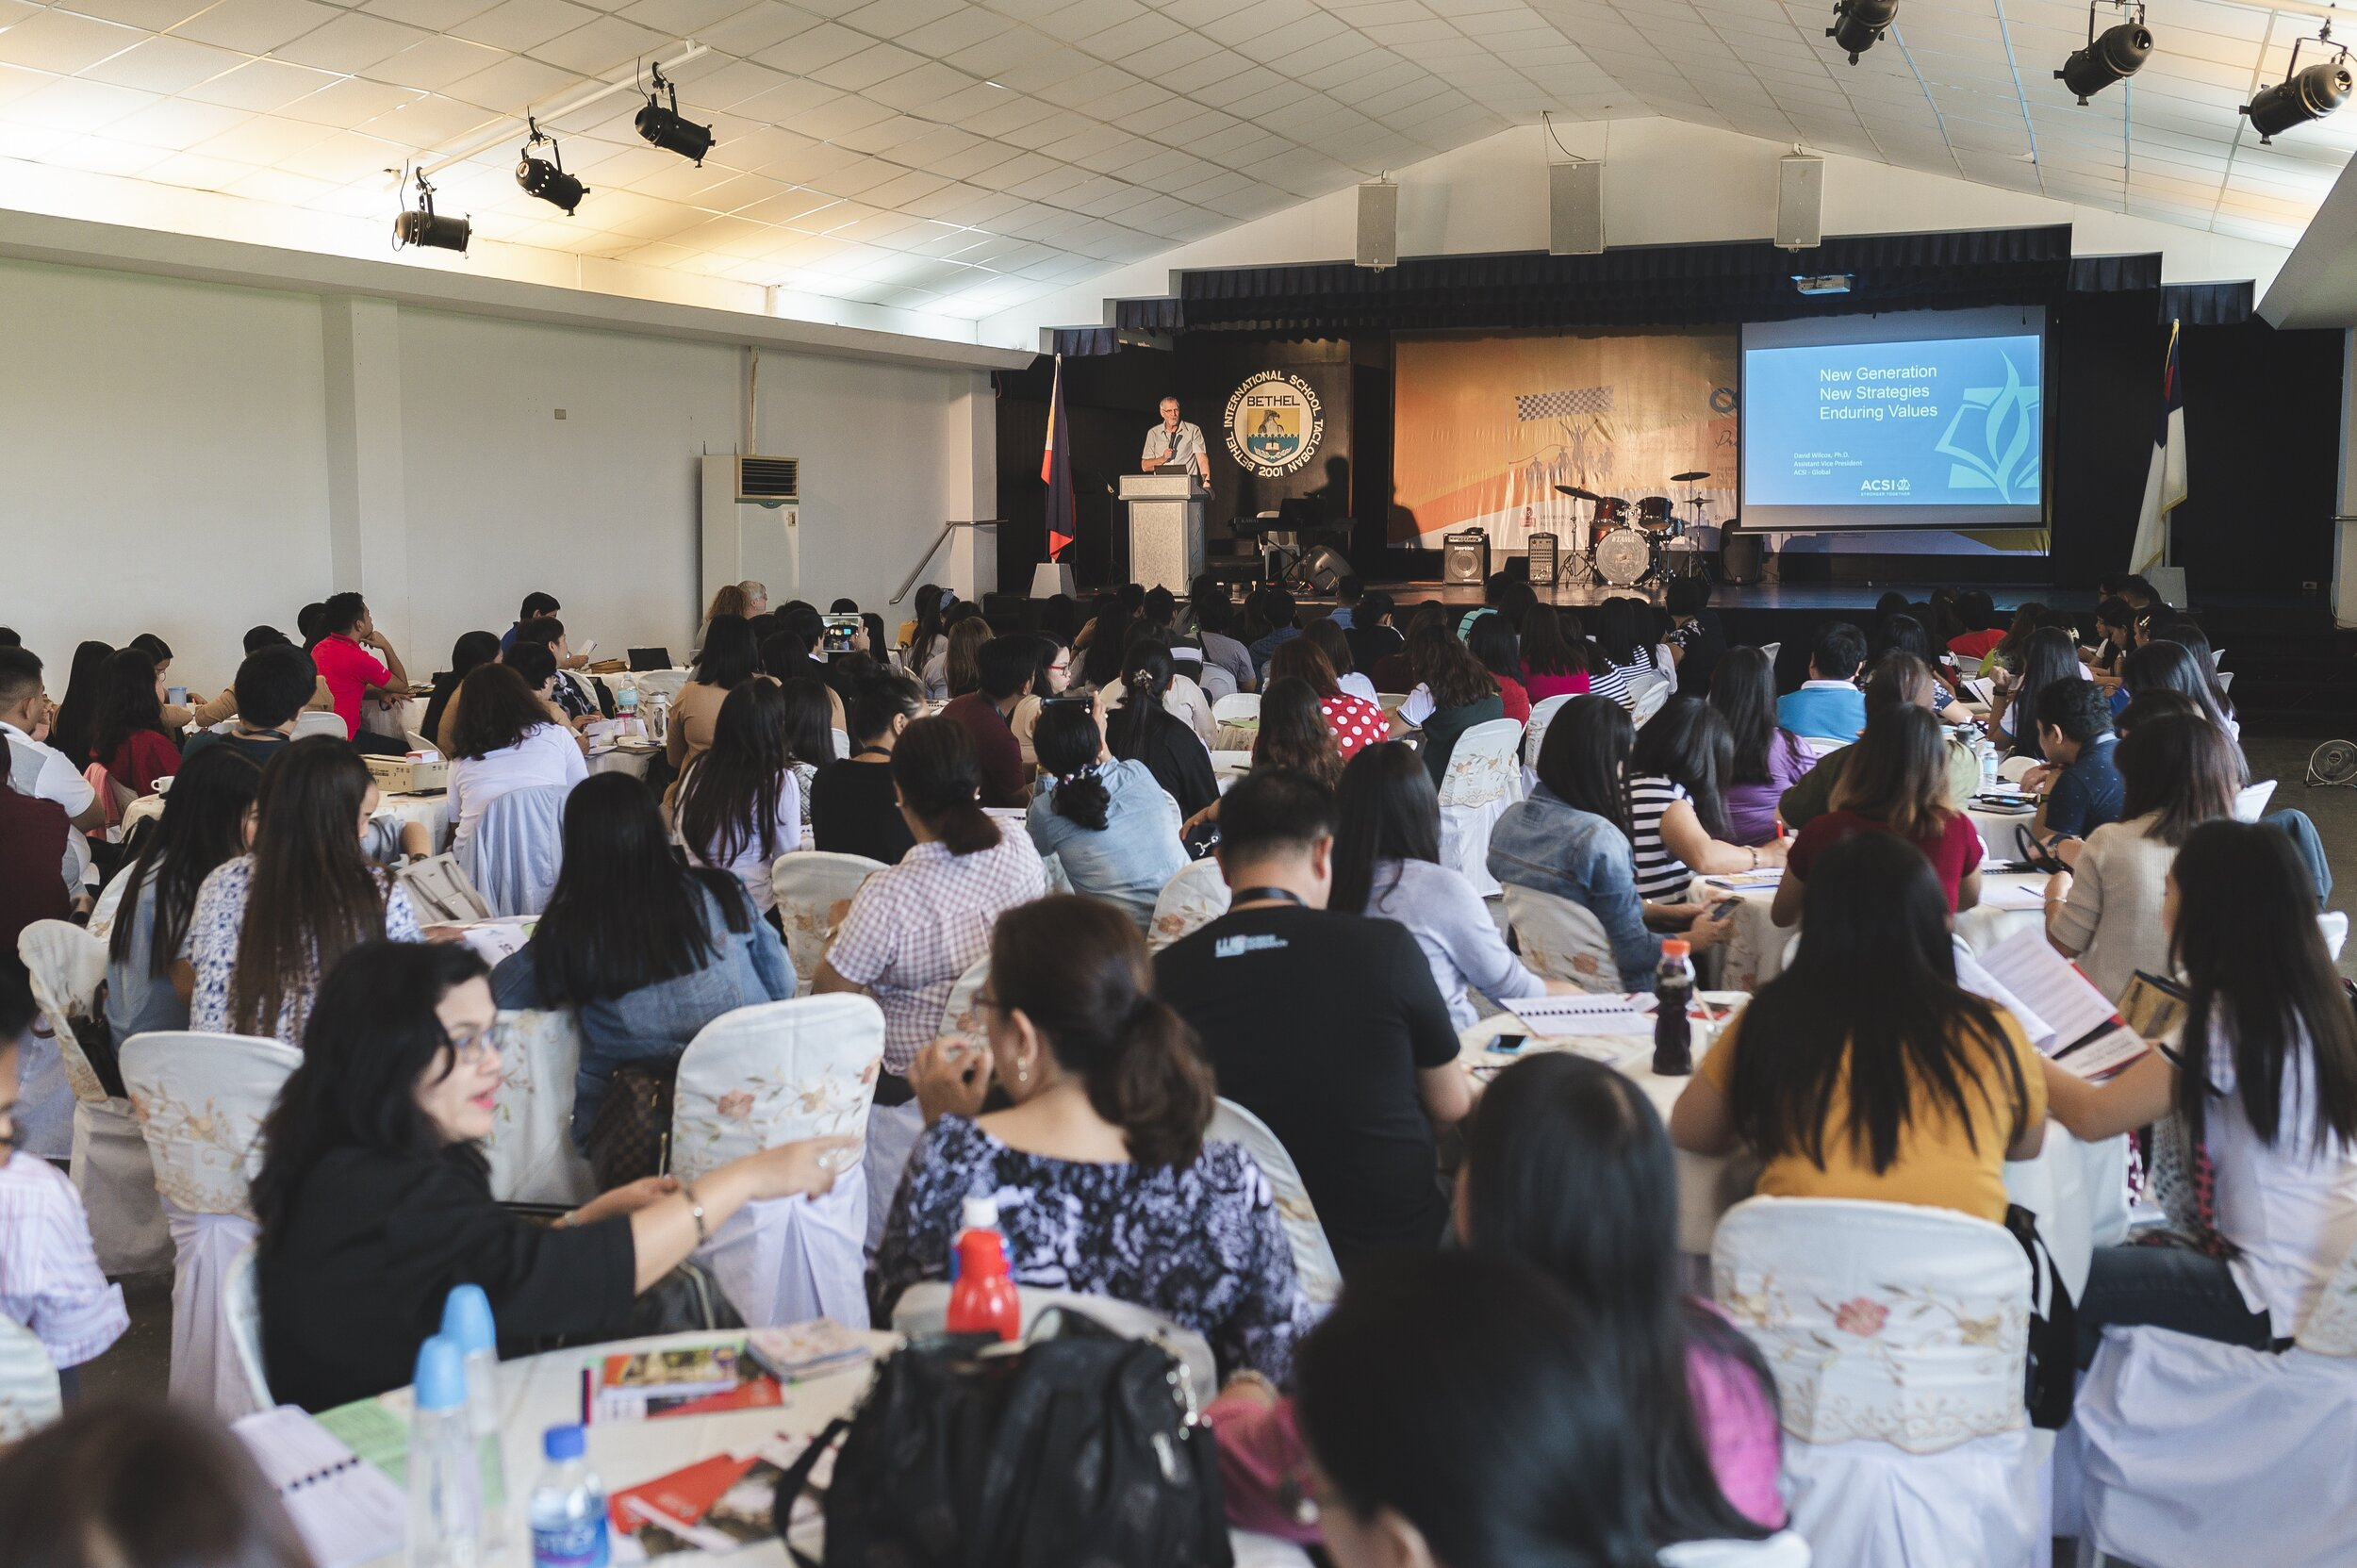 Dr. David Wilcox speaks to hundreds of Filipino educators and school leaders on the current generation and the enduring values that should be present in Christian education curriculum.